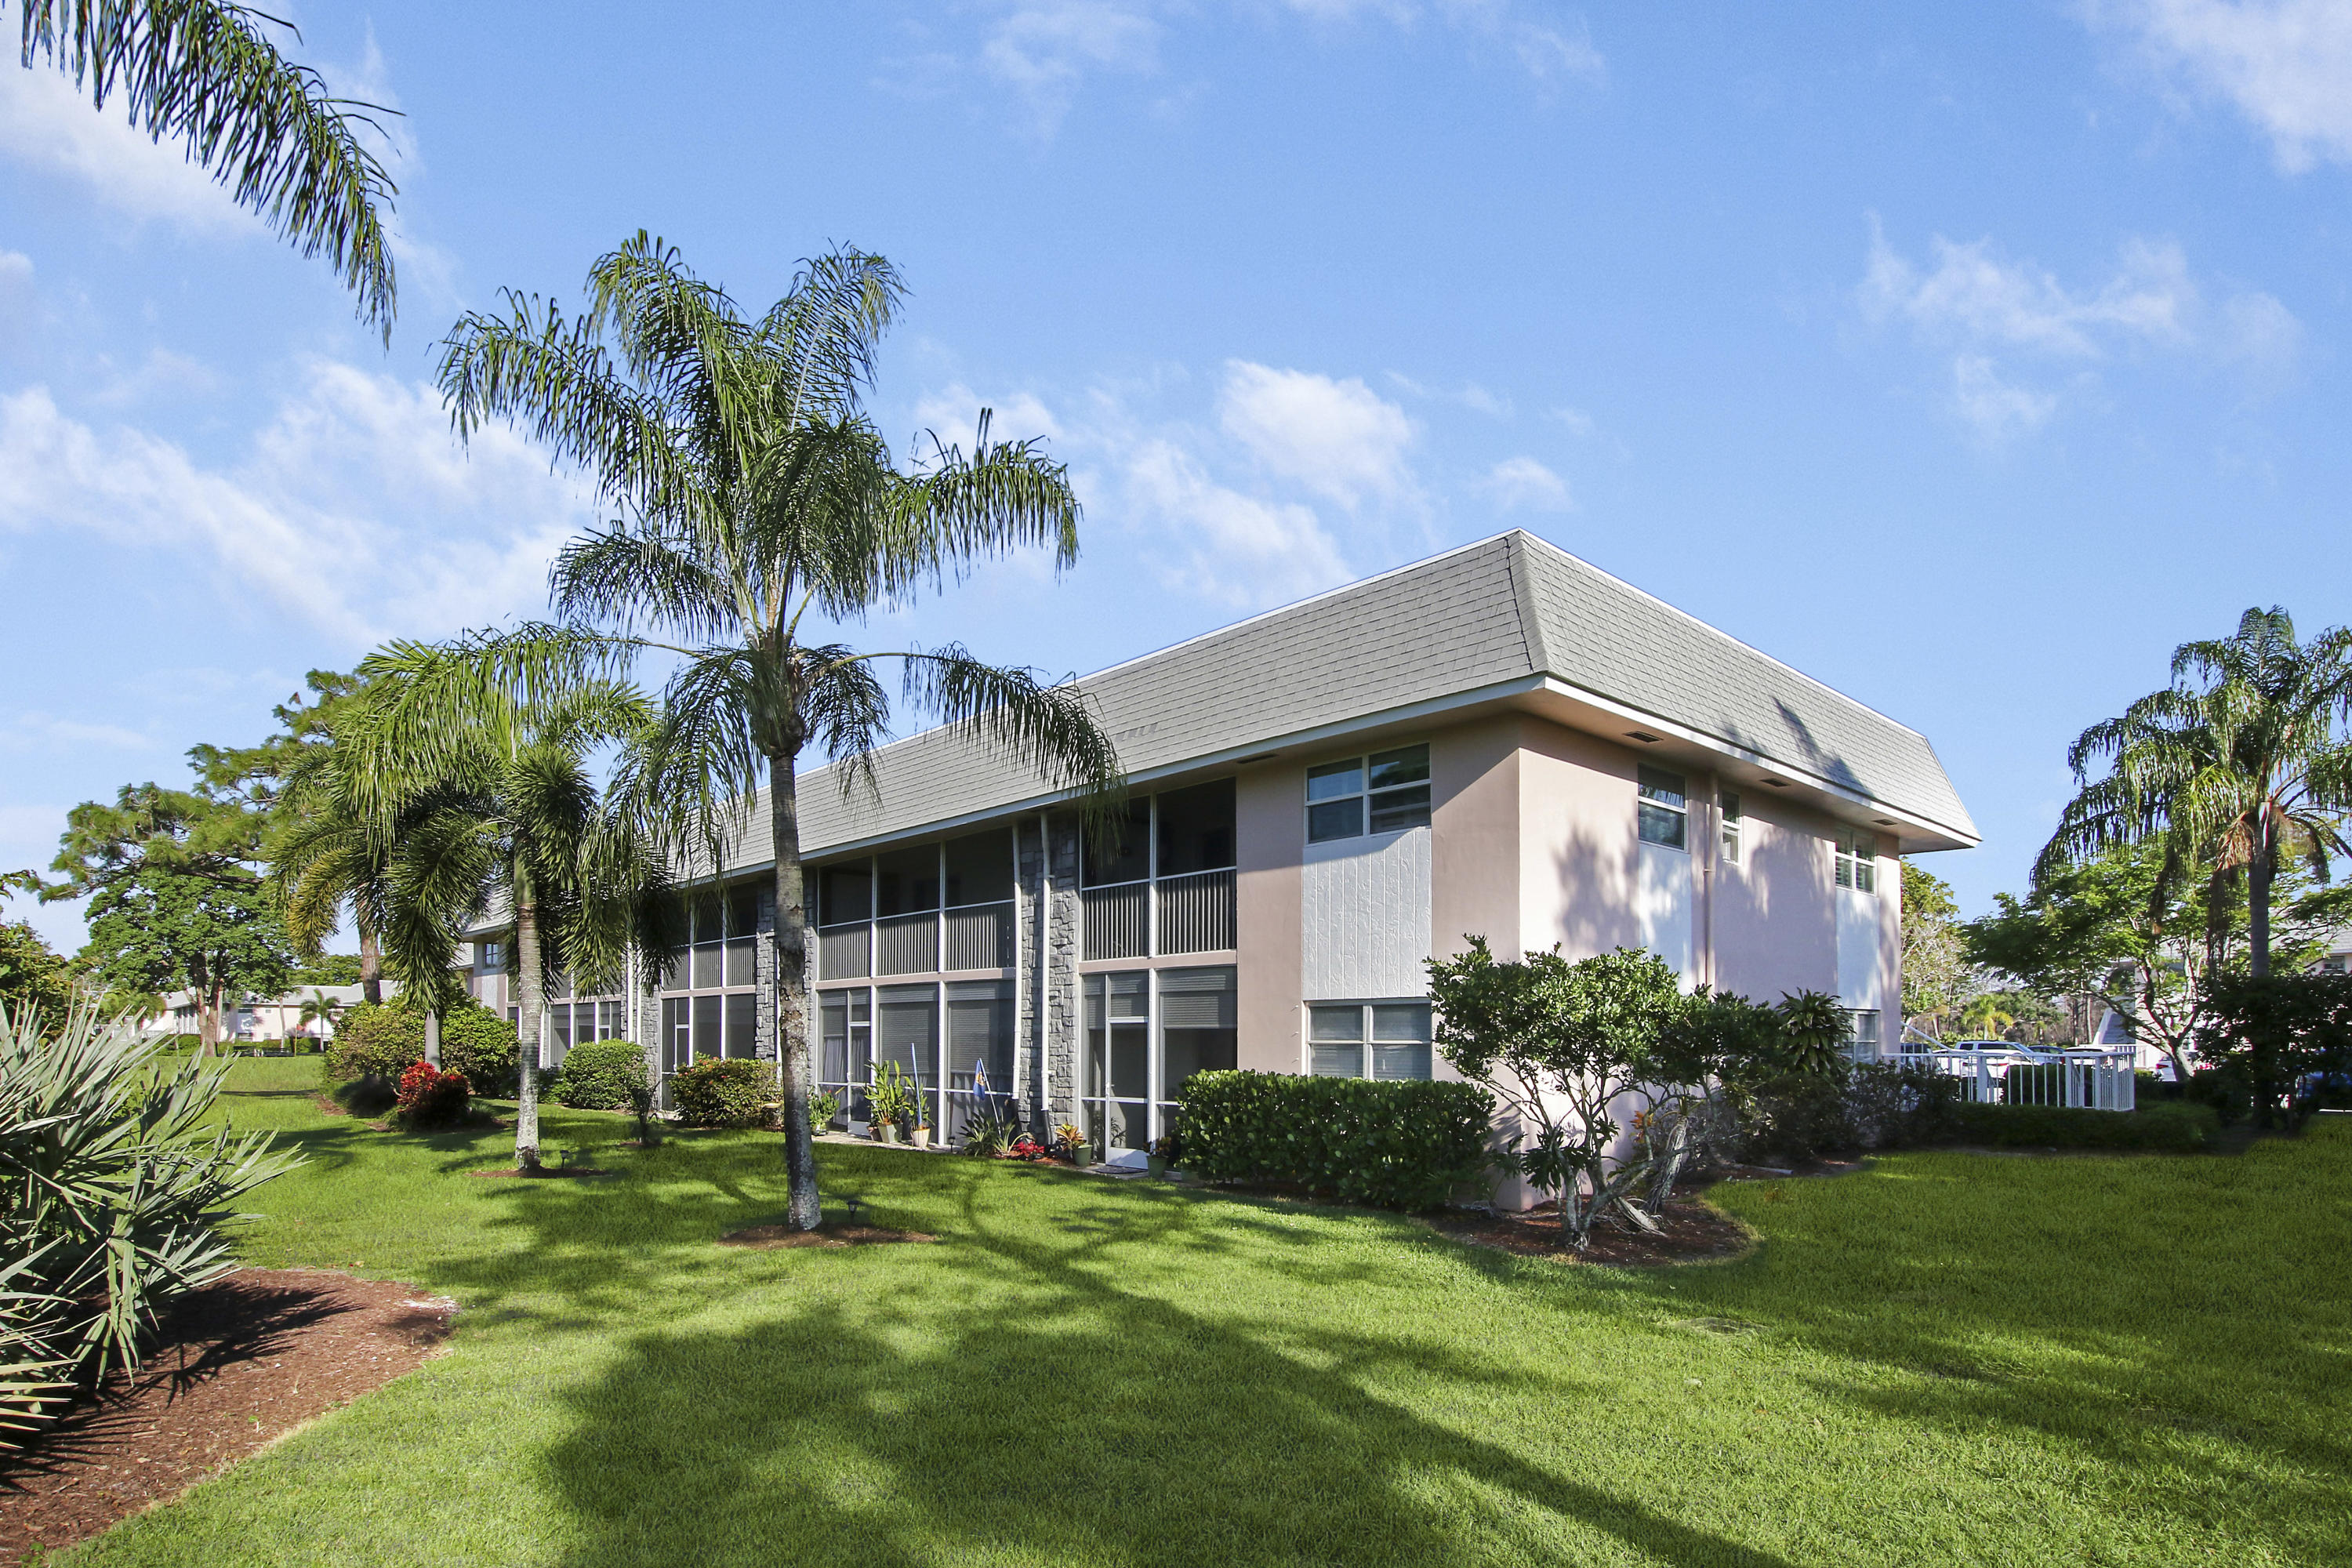 18081 Country Club Drive 147, Tequesta, Florida 33469, 2 Bedrooms Bedrooms, ,1.1 BathroomsBathrooms,A,Condominium,Country Club,RX-10700713